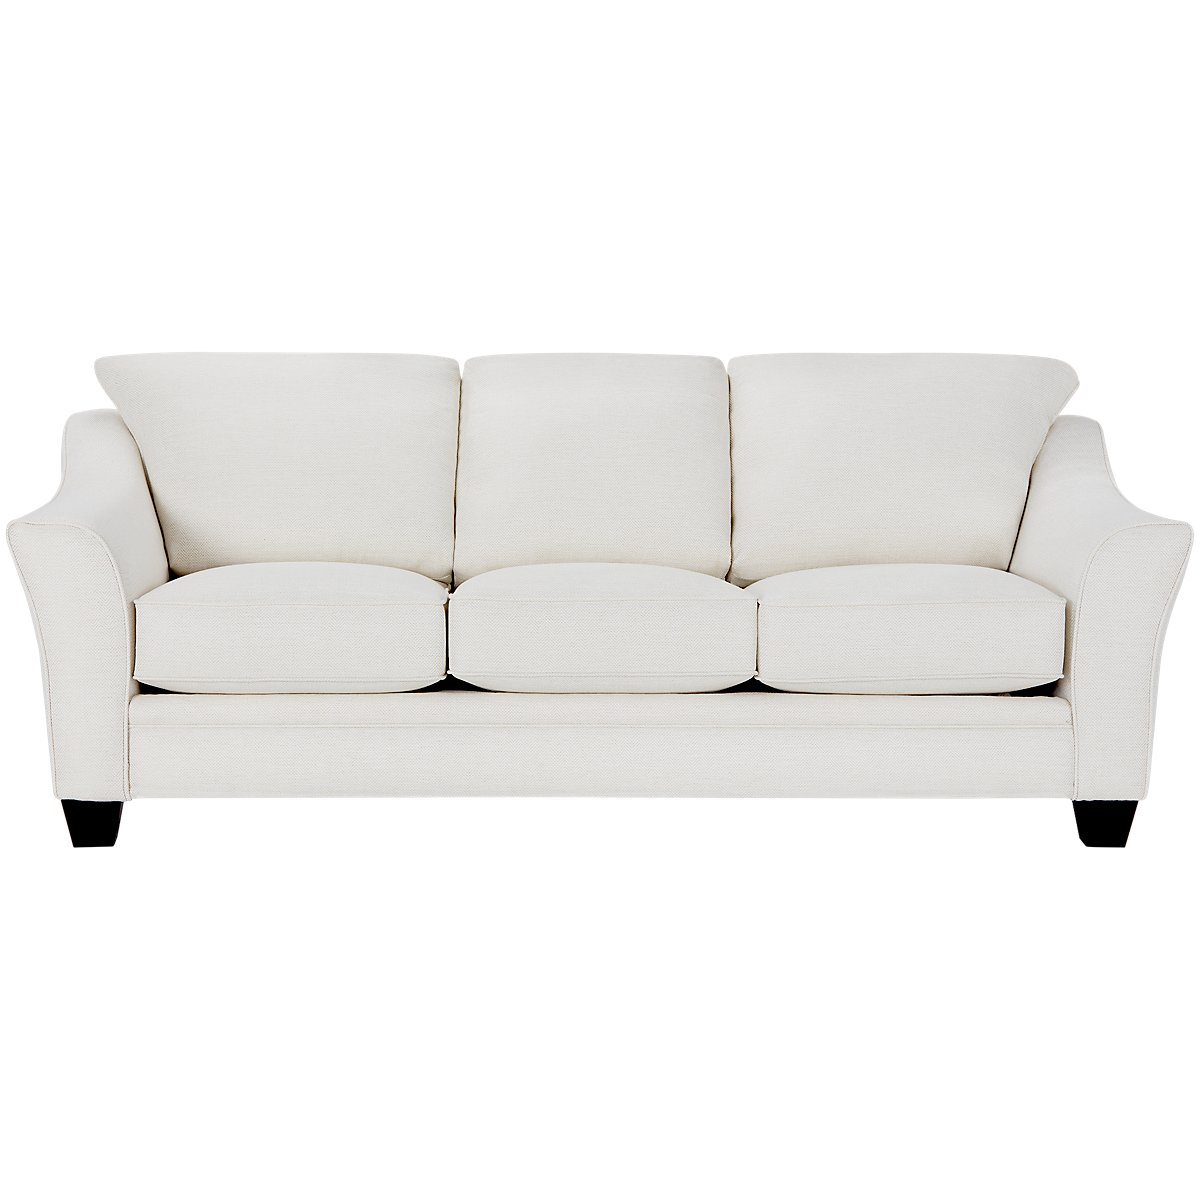 City Furniture Avery White Fabric Sofa